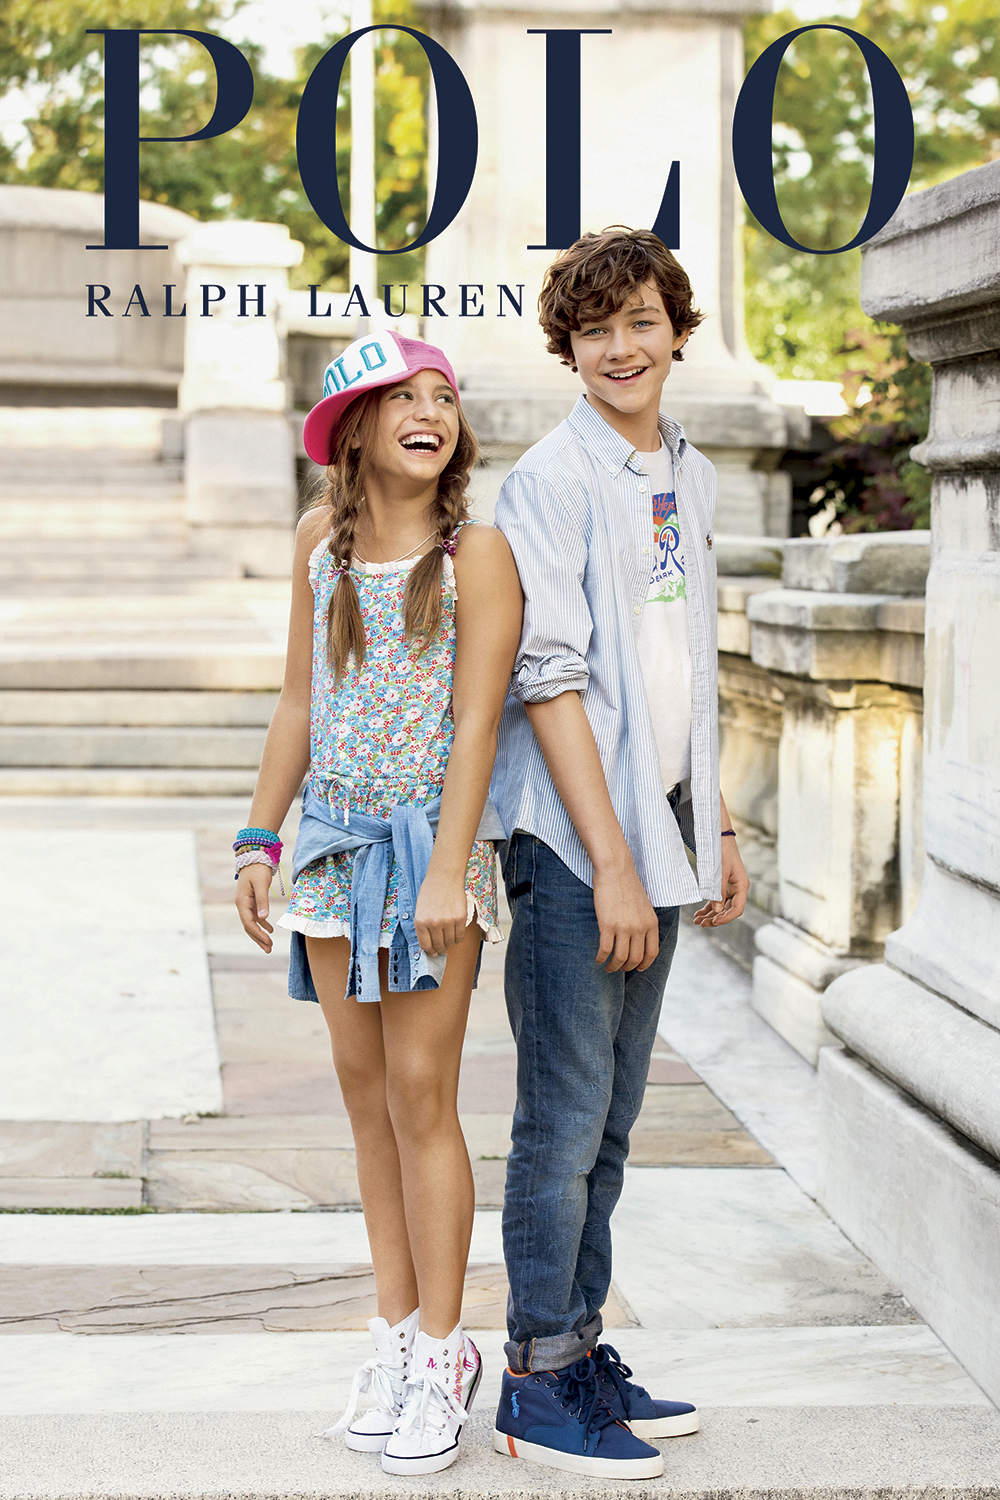 Polo ralph lauren children sj klint agenturer for Ralph lauren kids